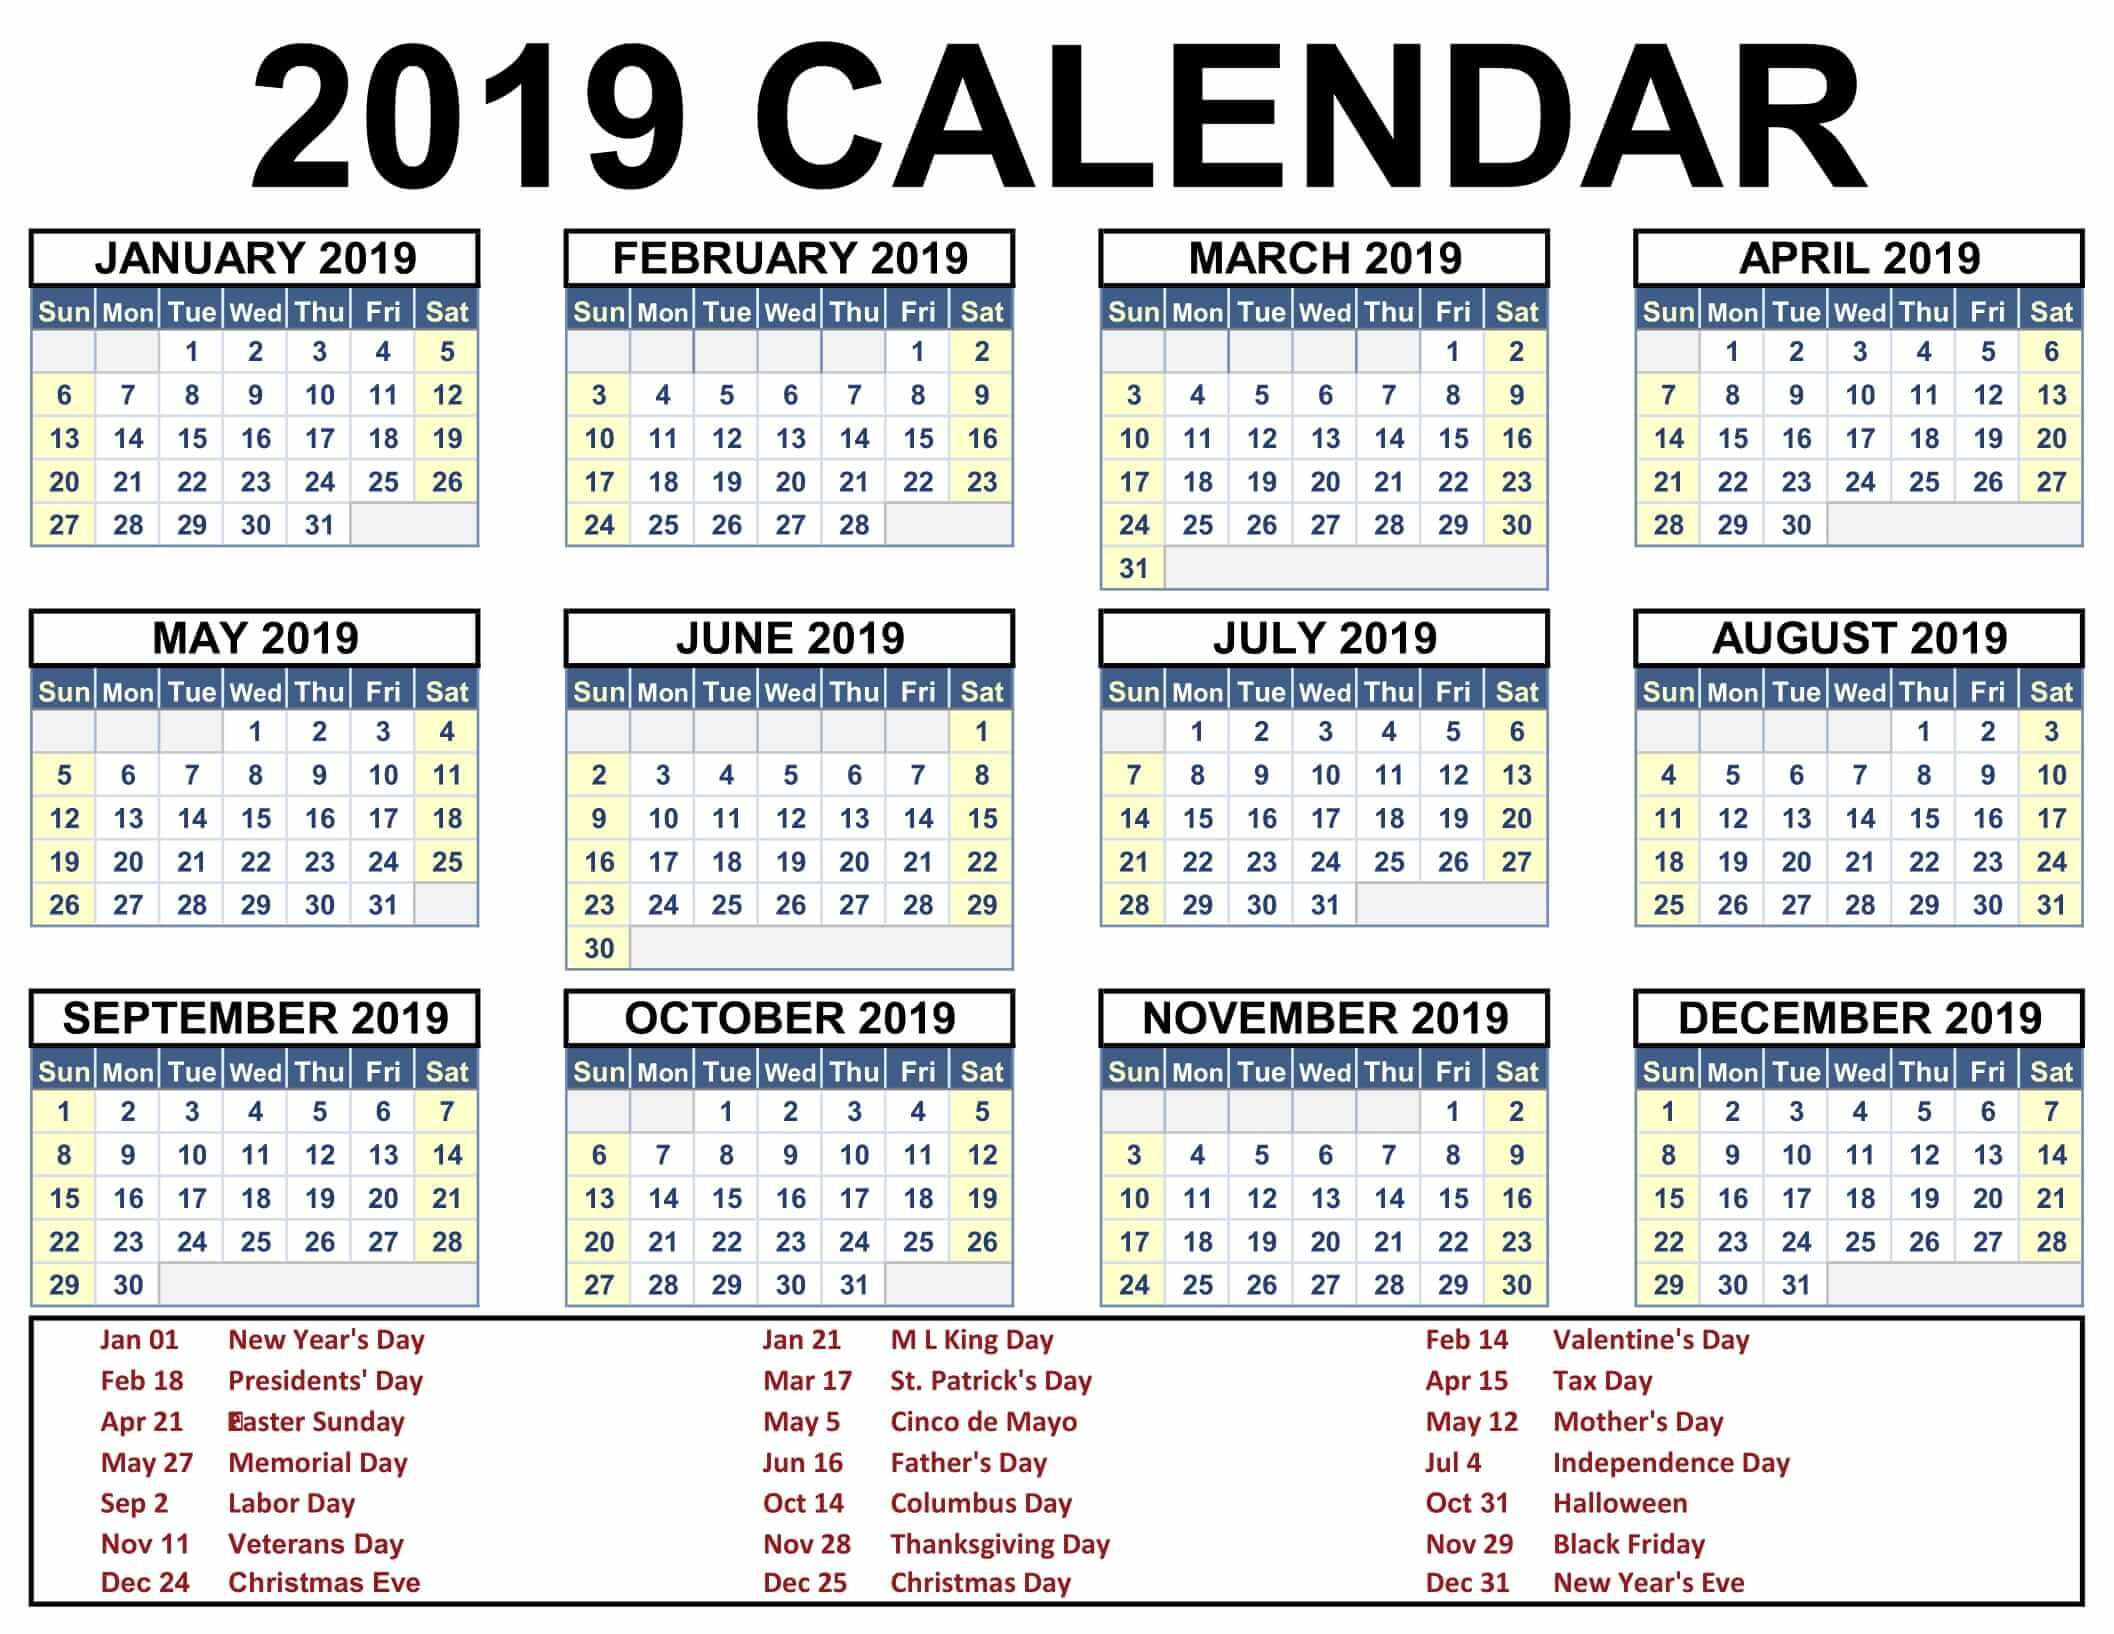 2019 Calendar With Holidays Printable #2019Calendar